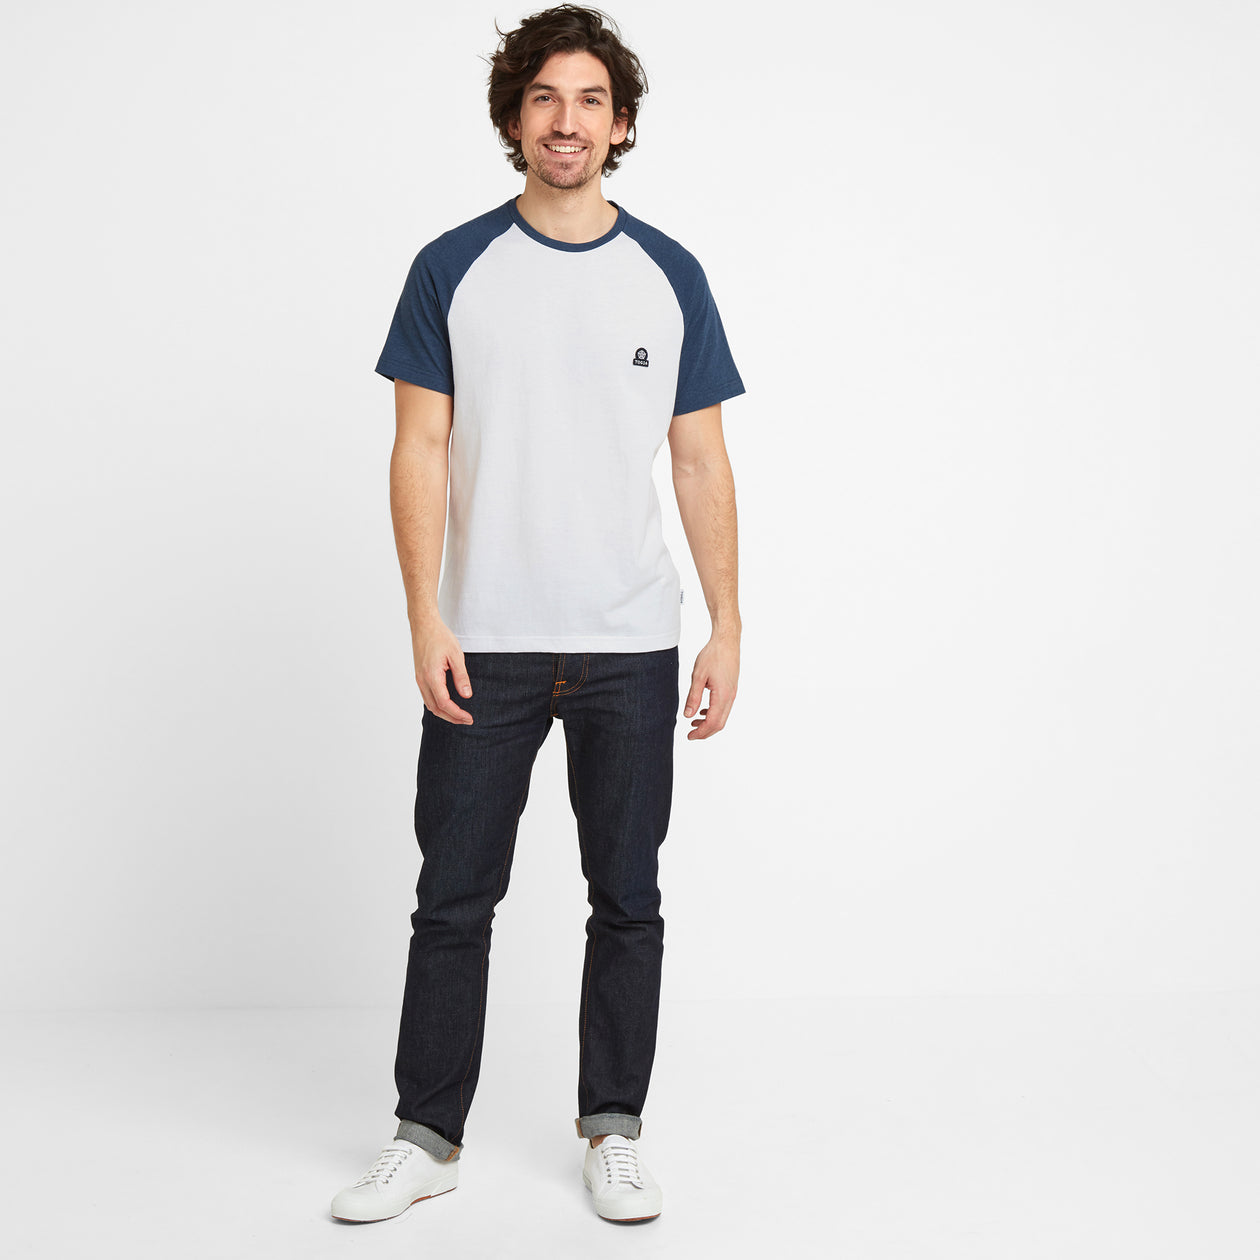 Hustwick Mens Raglan T-Shirt - Denim/Optic White image 4